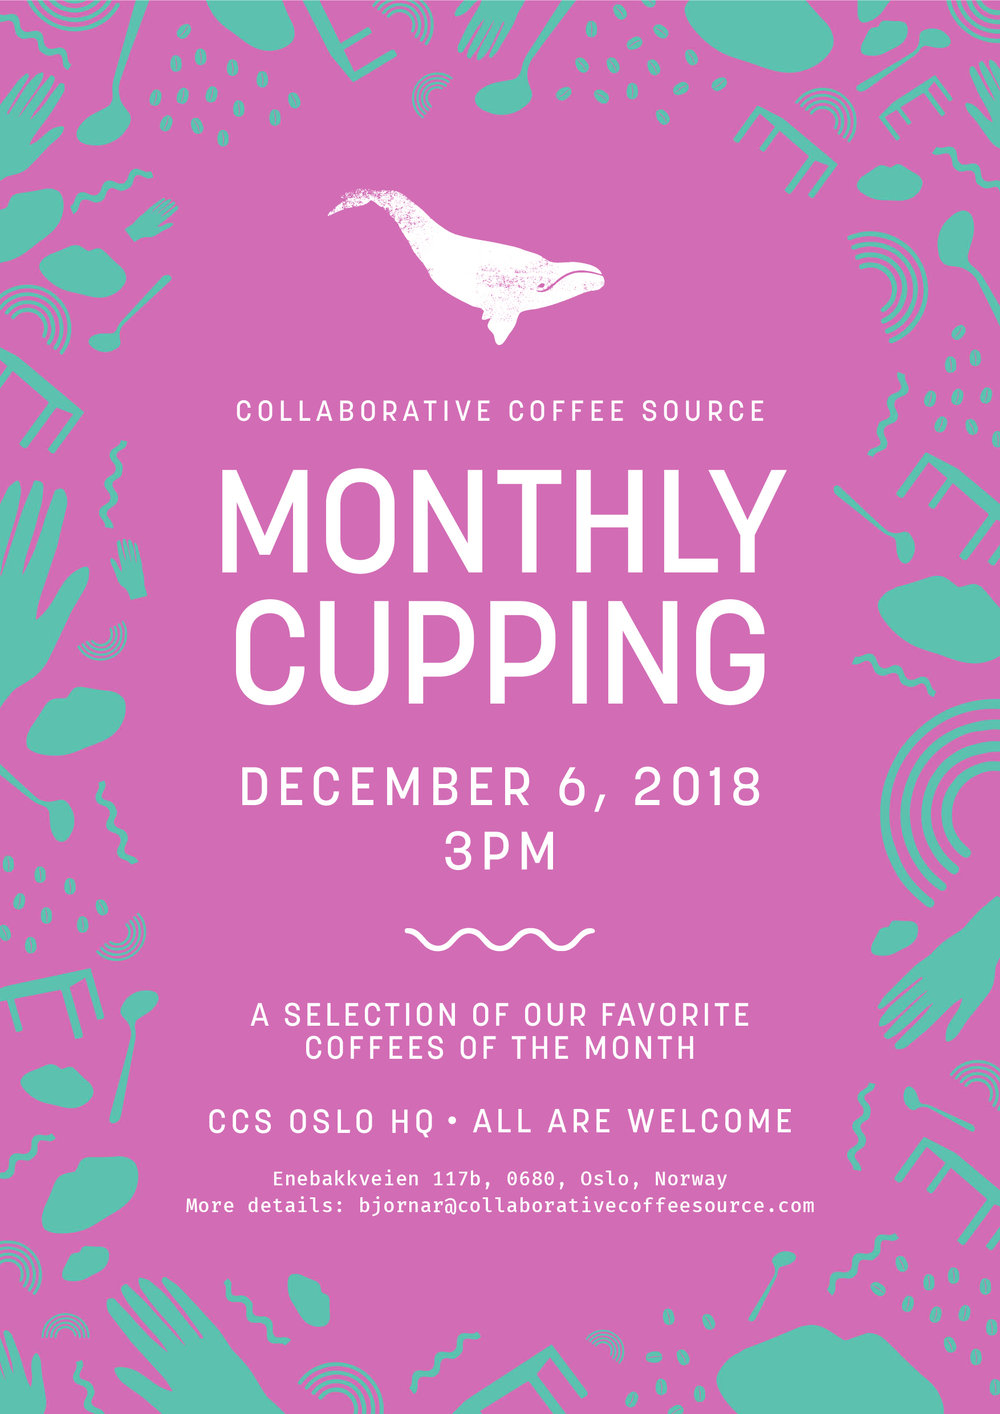 Monthly cupping December poster3.jpg